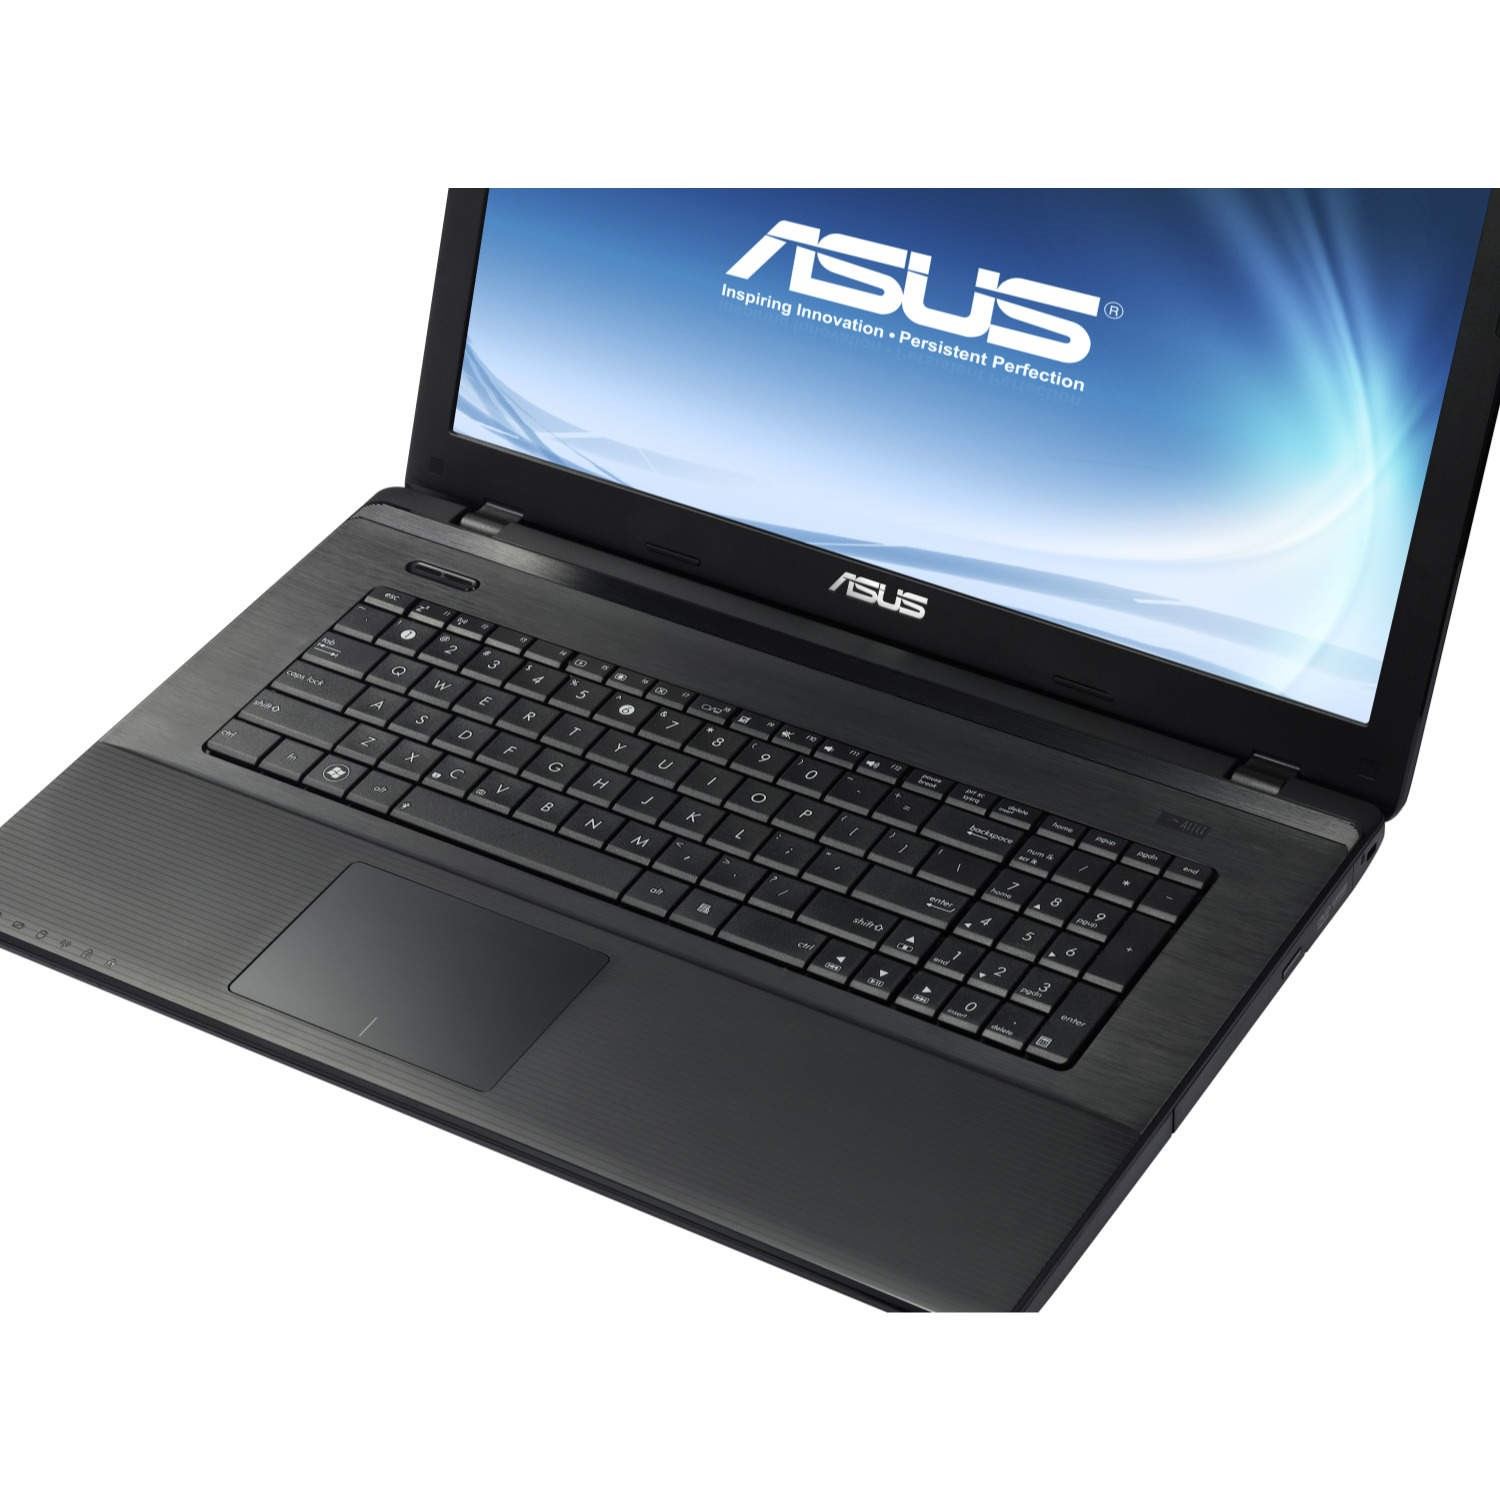 ASUS X75VC NVIDIA GRAPHICS DRIVERS FOR WINDOWS MAC